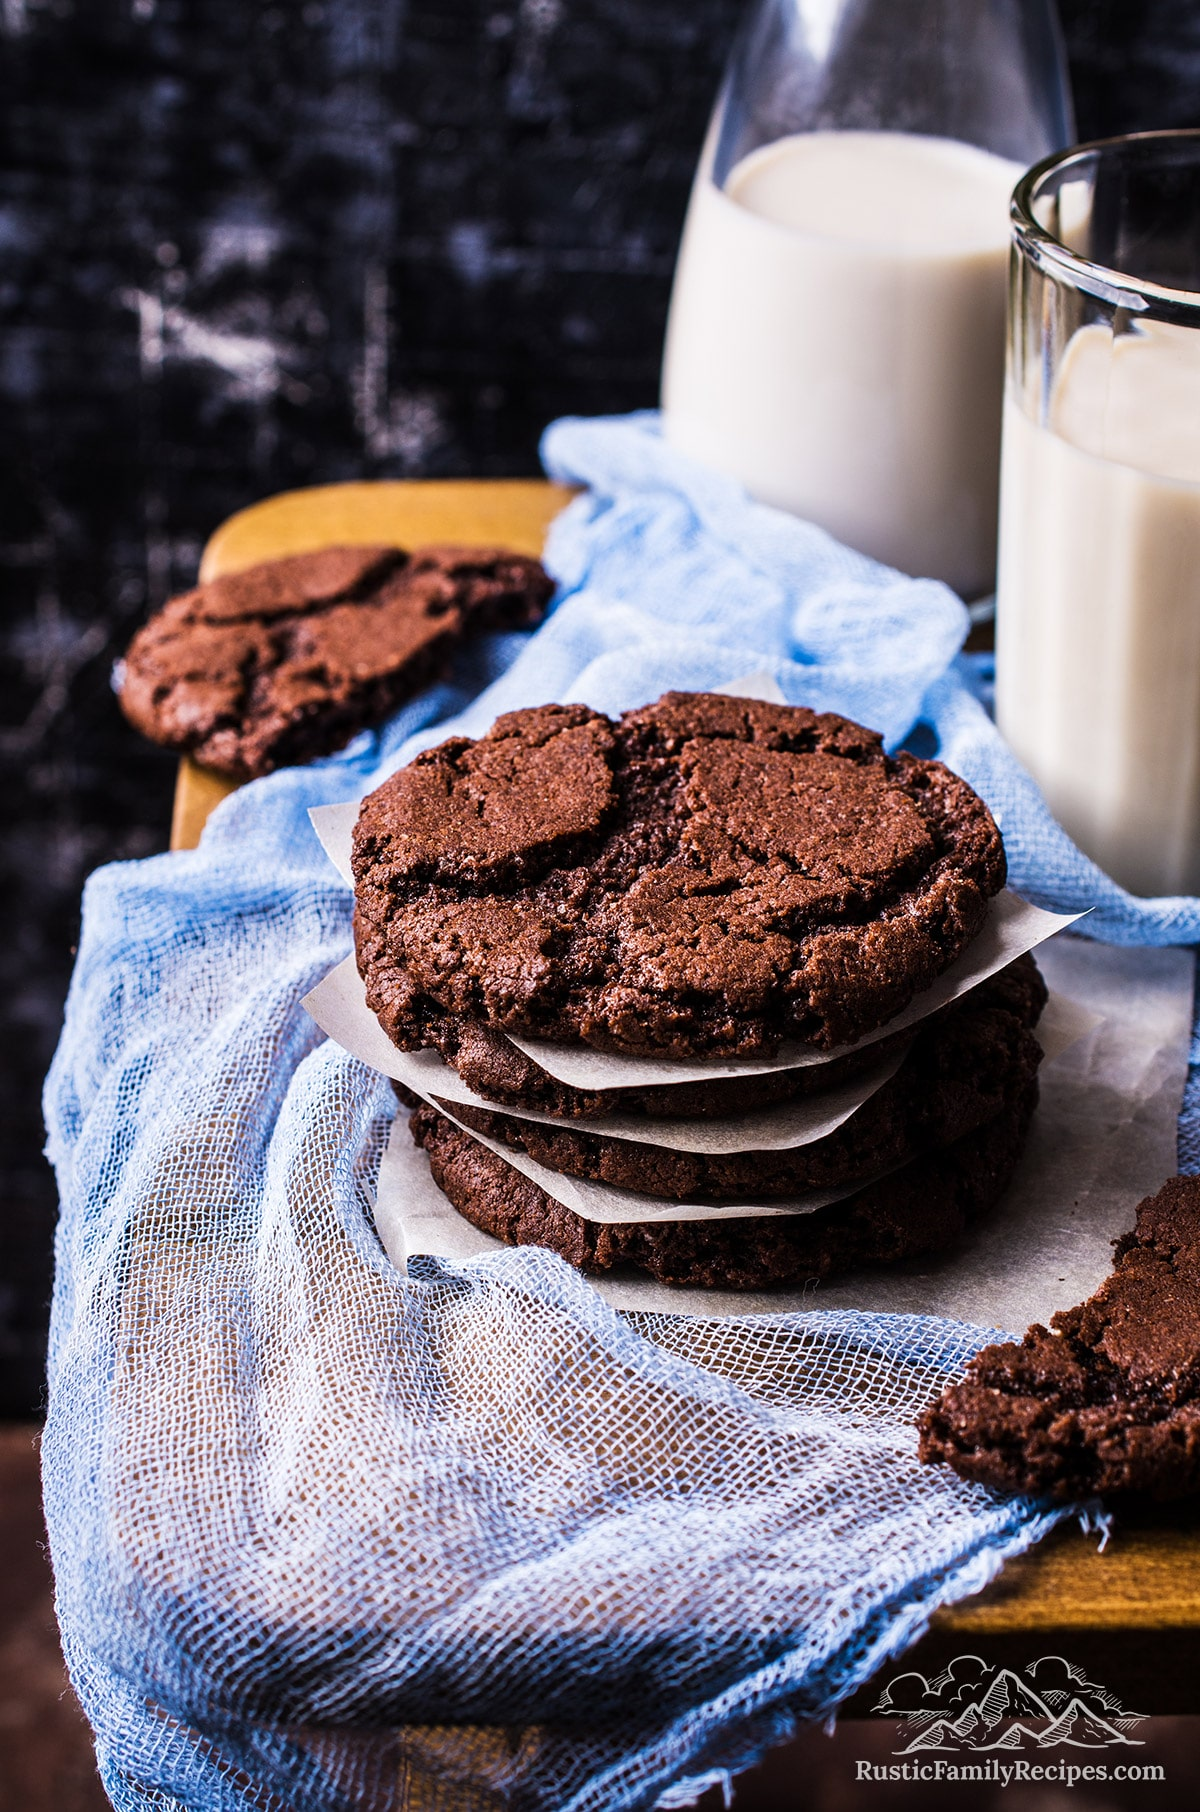 A stack of chocolate cookies next to glasses of milk